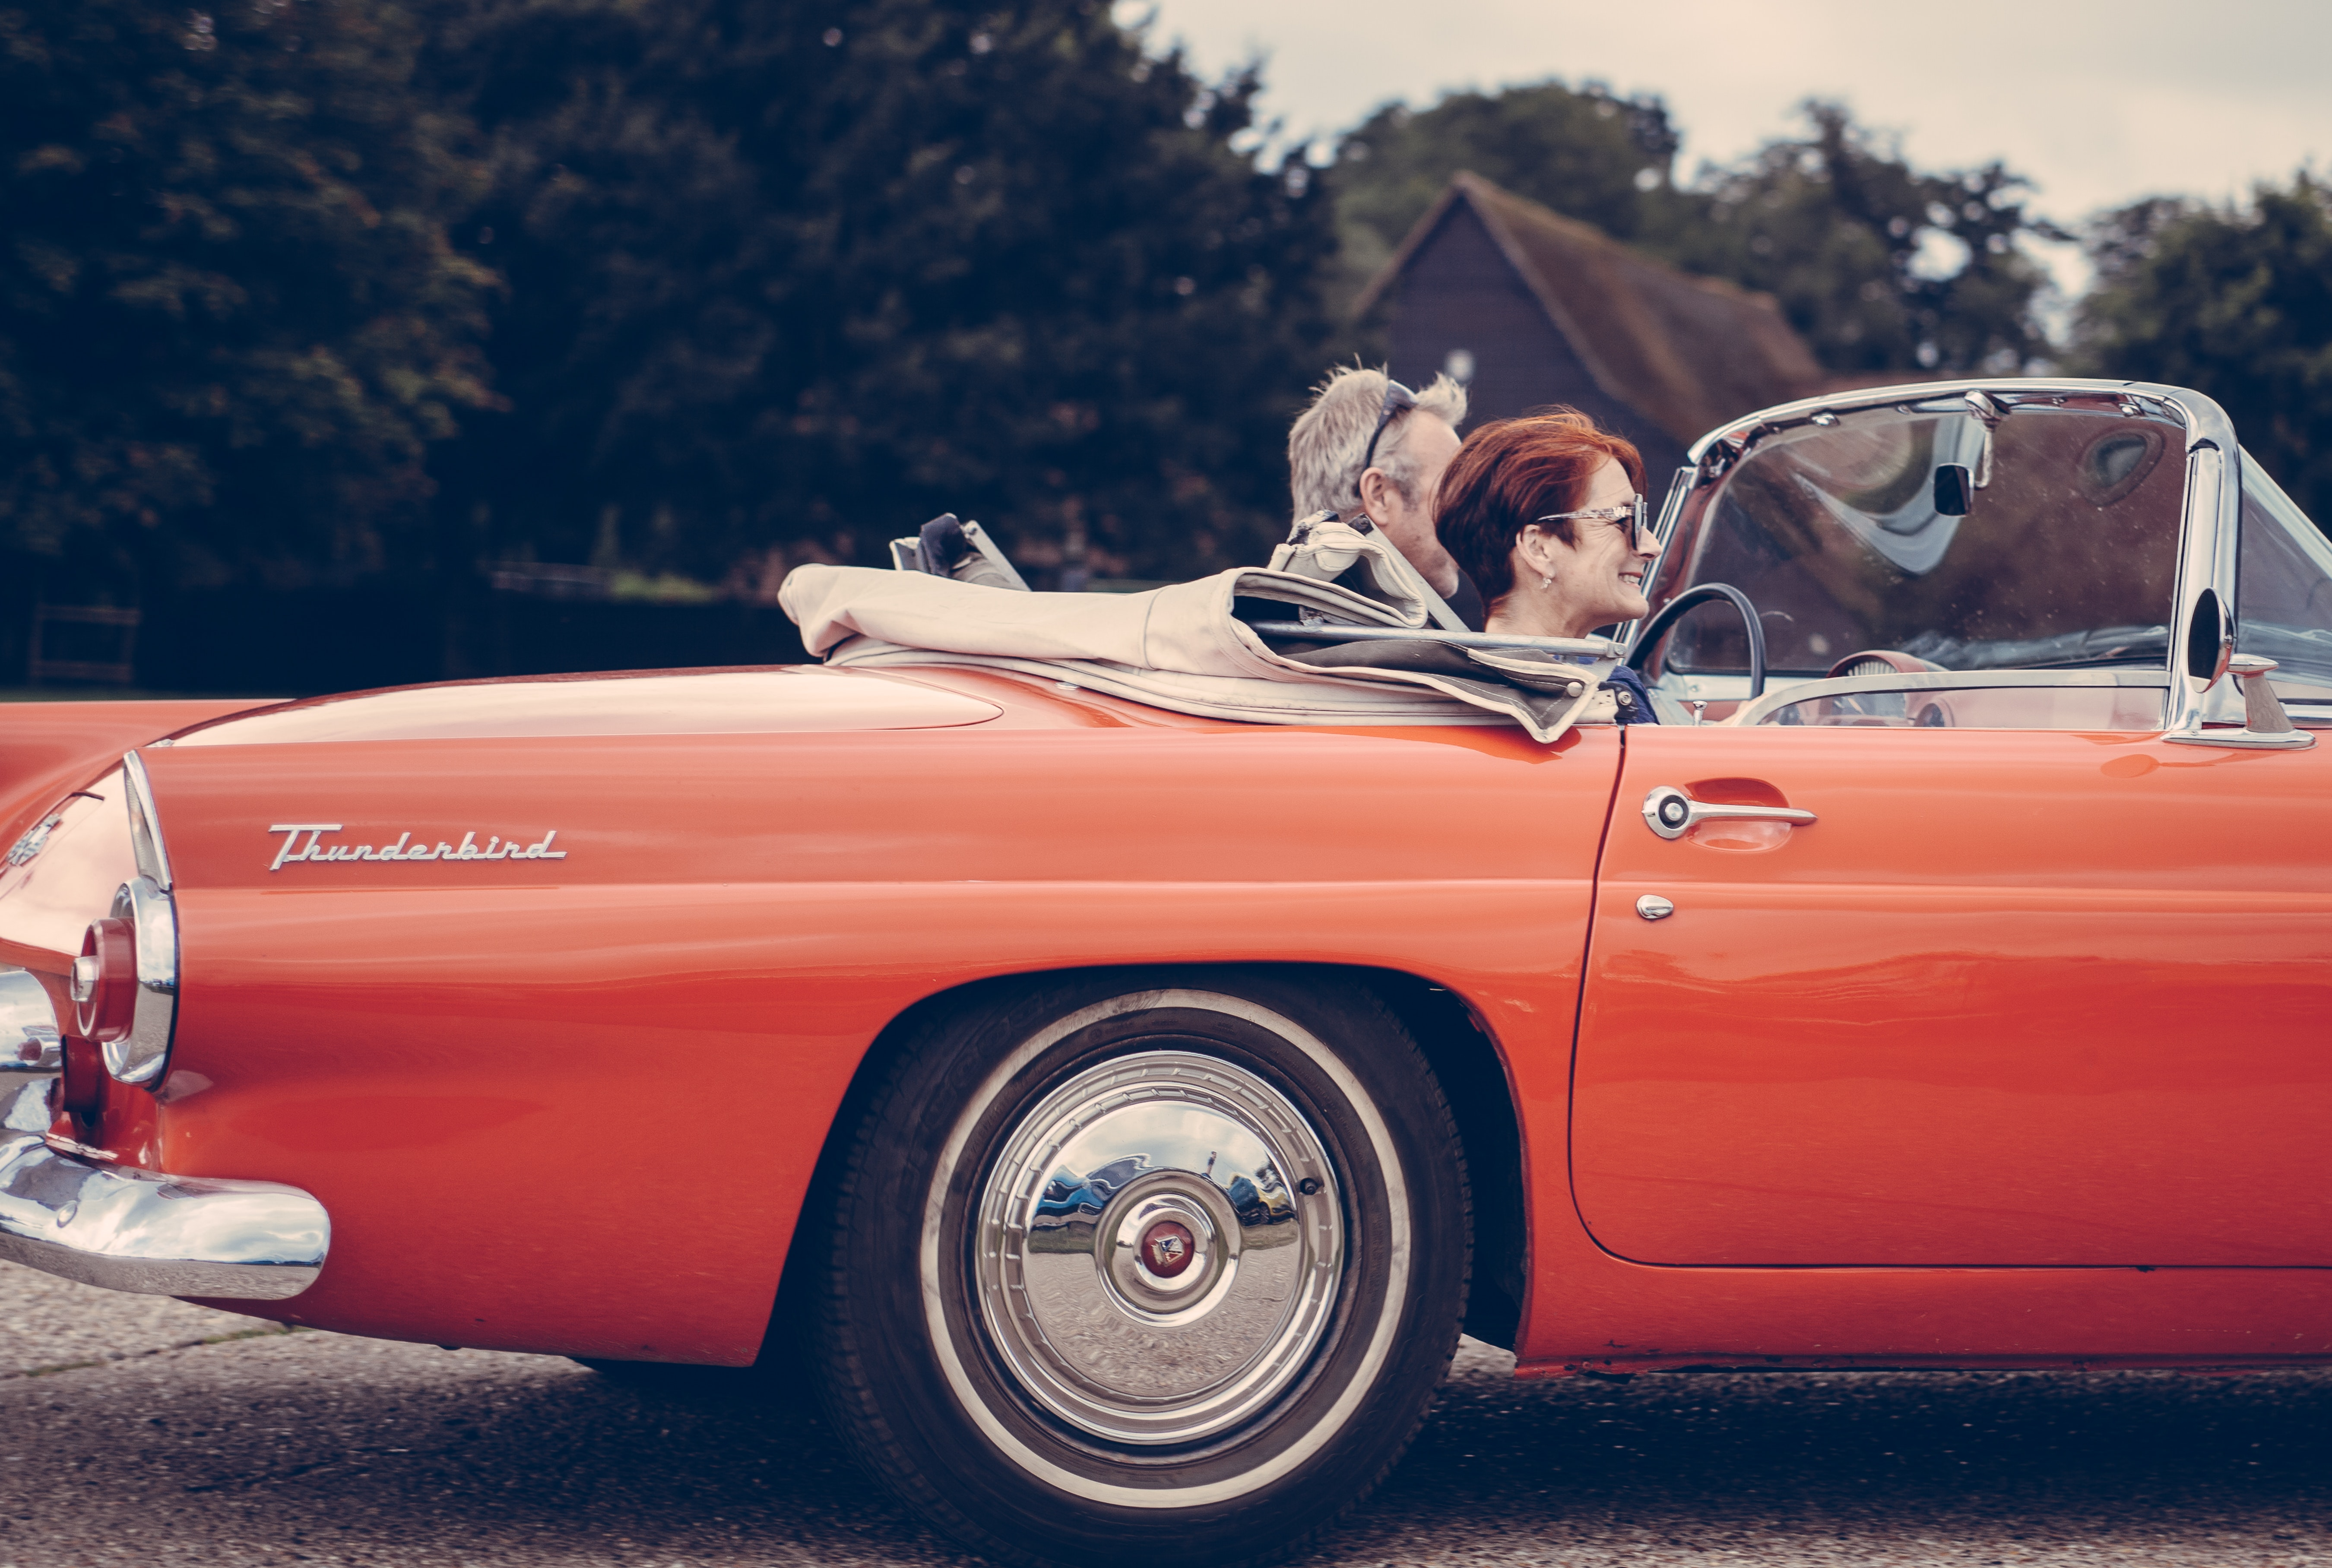 Couple riding red ford thunderbird during daytime photo